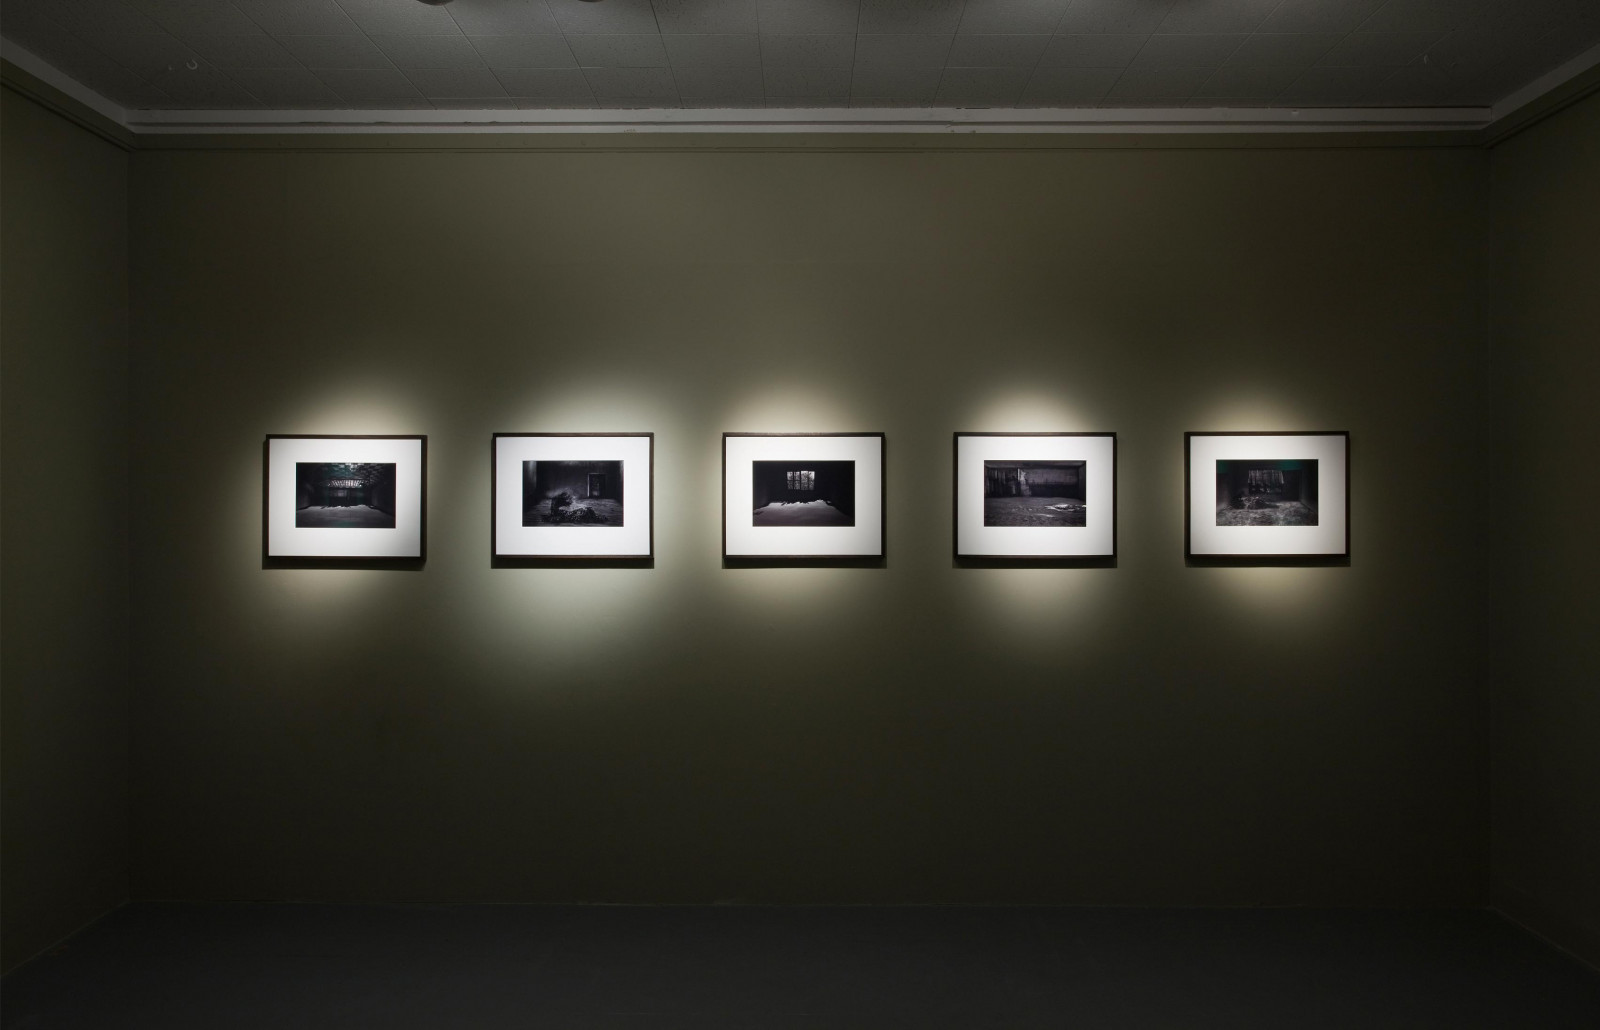 The Butler Gallery, Kilkenny, Ireland, 2008 (solo show). Curated by Anna O'Sullivan. Photo: Denis Mortell.